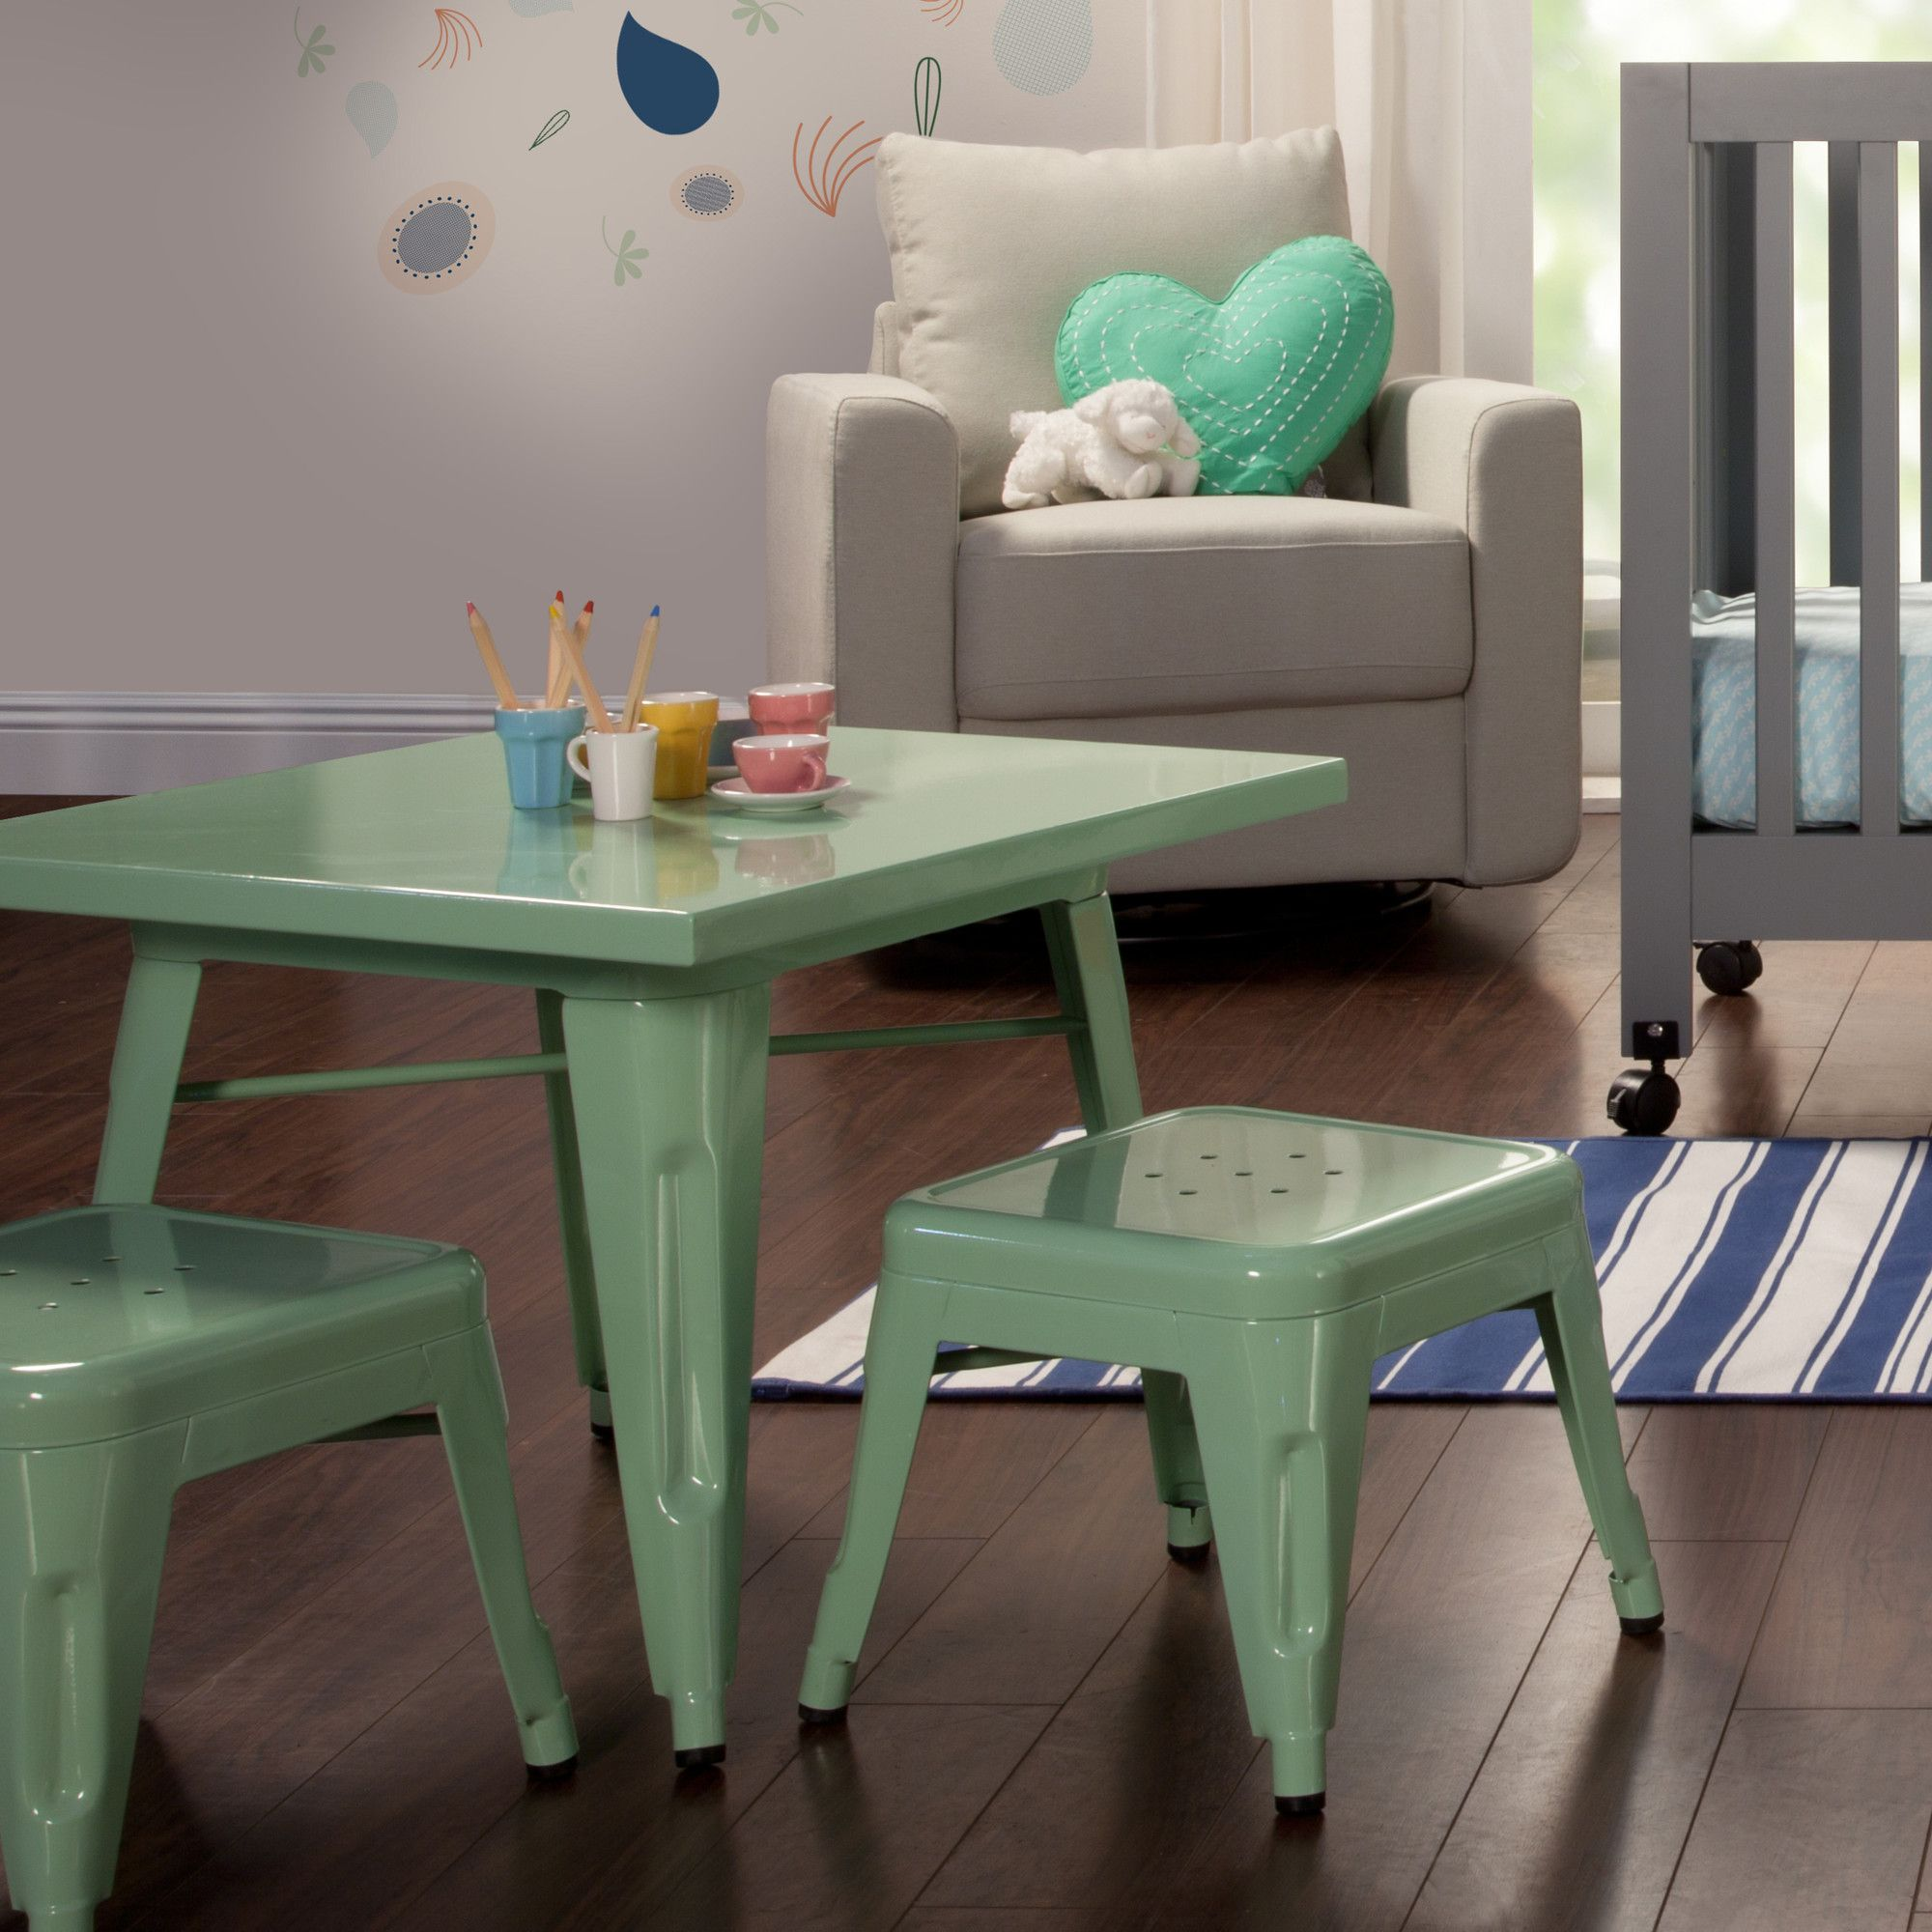 Lemonade Kids 3 Piece Square Table And Chair Set